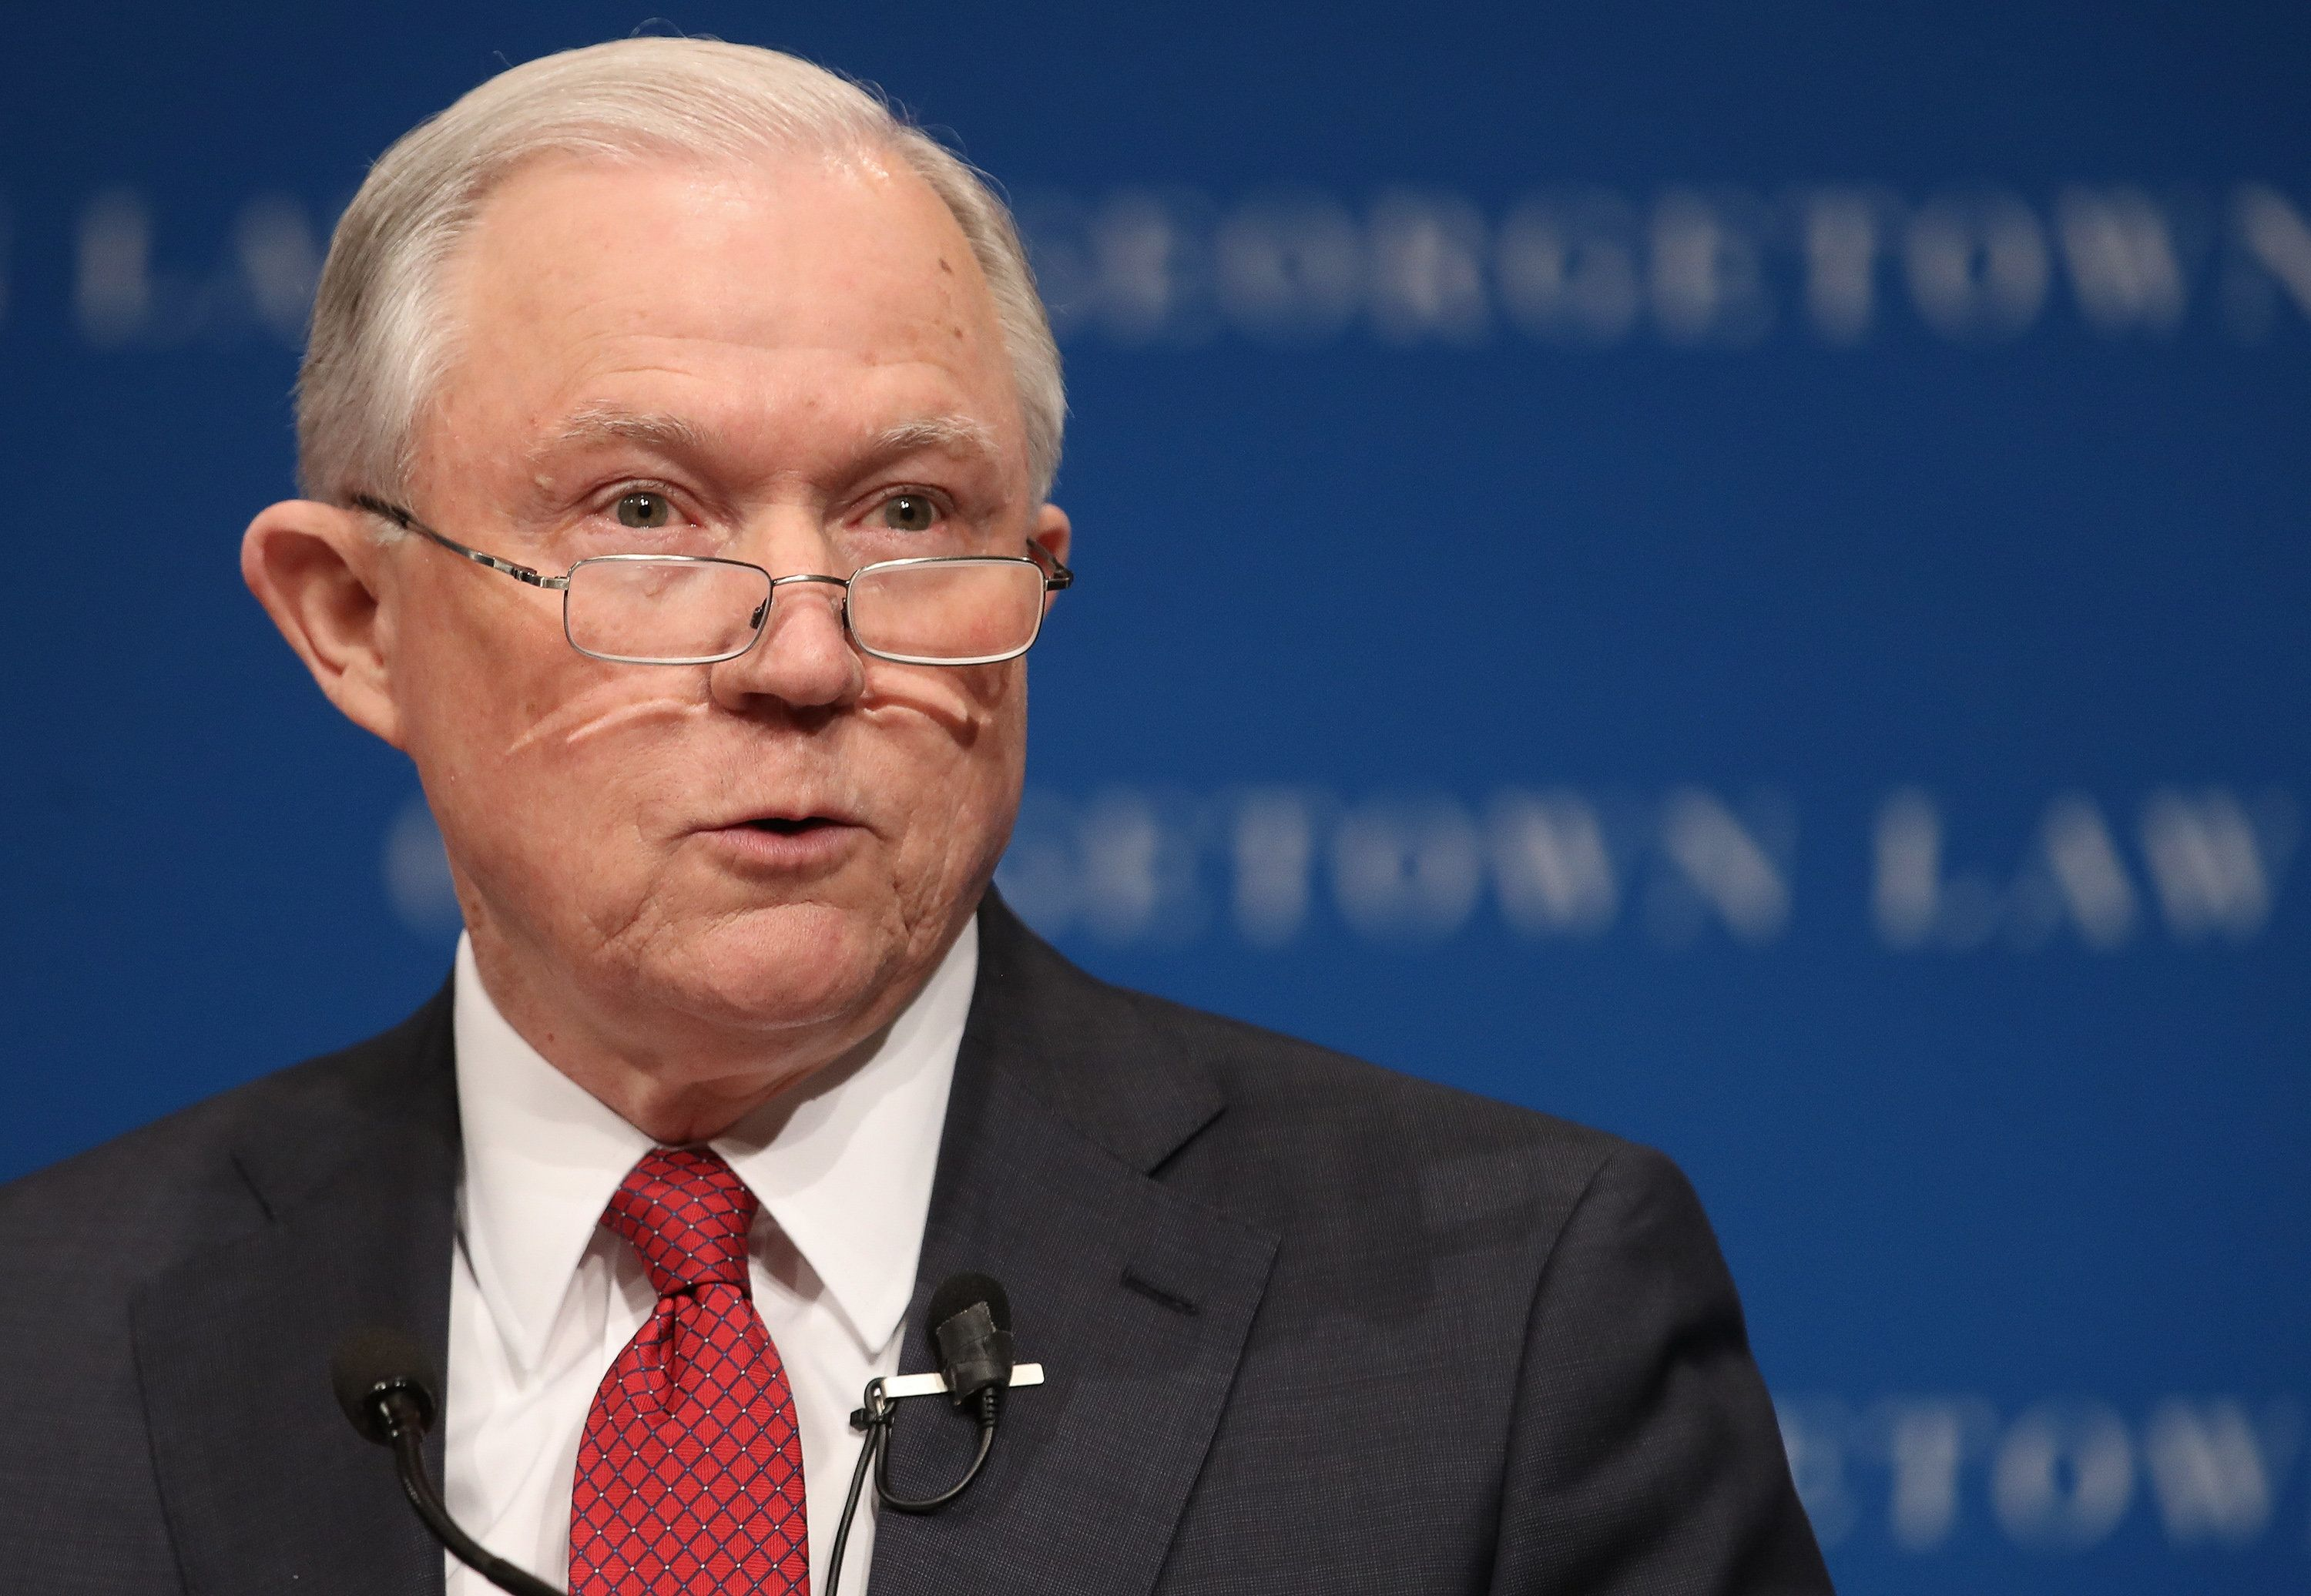 WASHINGTON, DC - SEPTEMBER 26:  U.S. Attorney General Jeff Sessions speaks at the Georgetown University Law Center September 26, 2017 in Washington, DC. Sessions spoke on the topic of free speech on college campuses and took several questions following his remarks.  (Photo by Win McNamee/Getty Images)